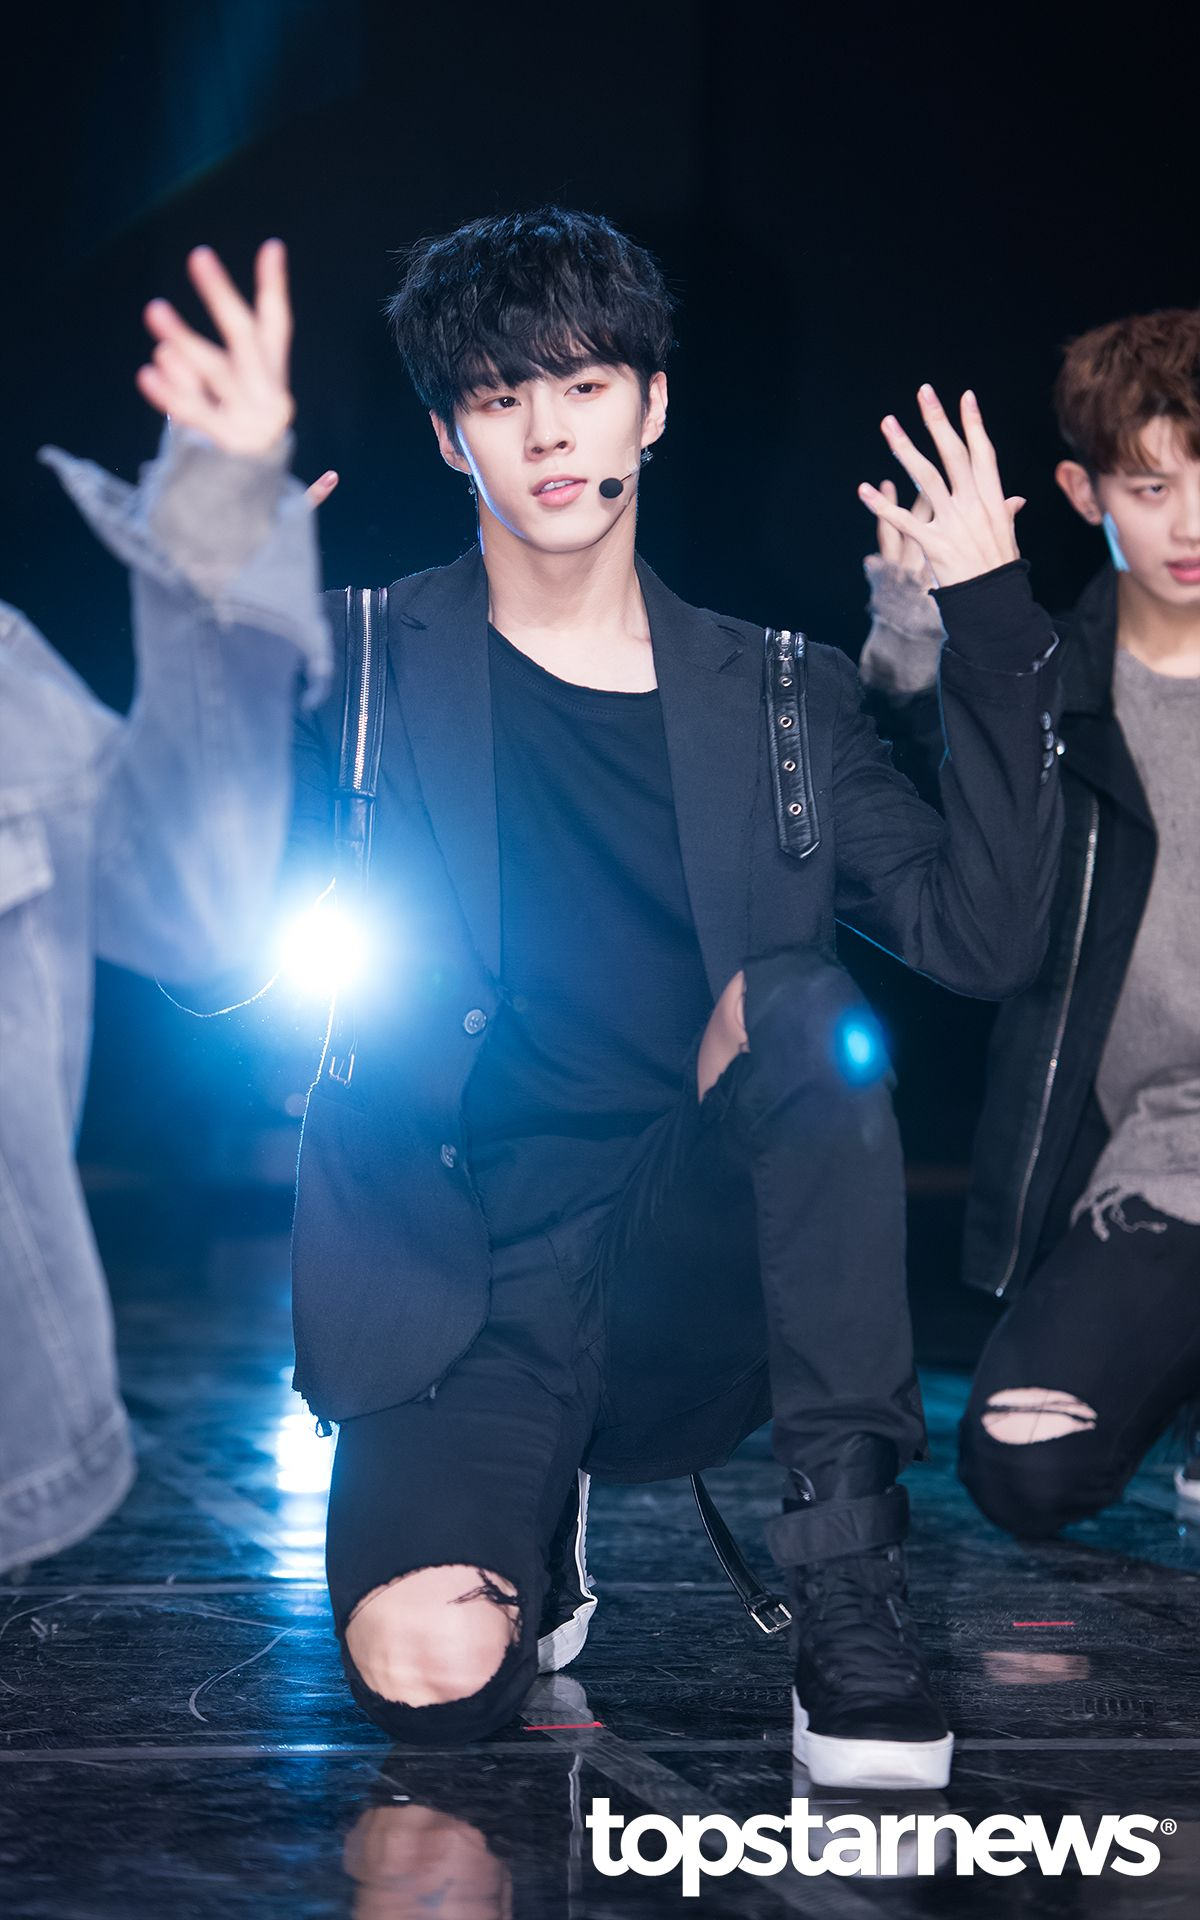 [NEWS] UP10TION 'BURST' SHOWCASE - UP10TION  Wooshin #업텐션 #UP10TION #BURST #Wooshin #우신